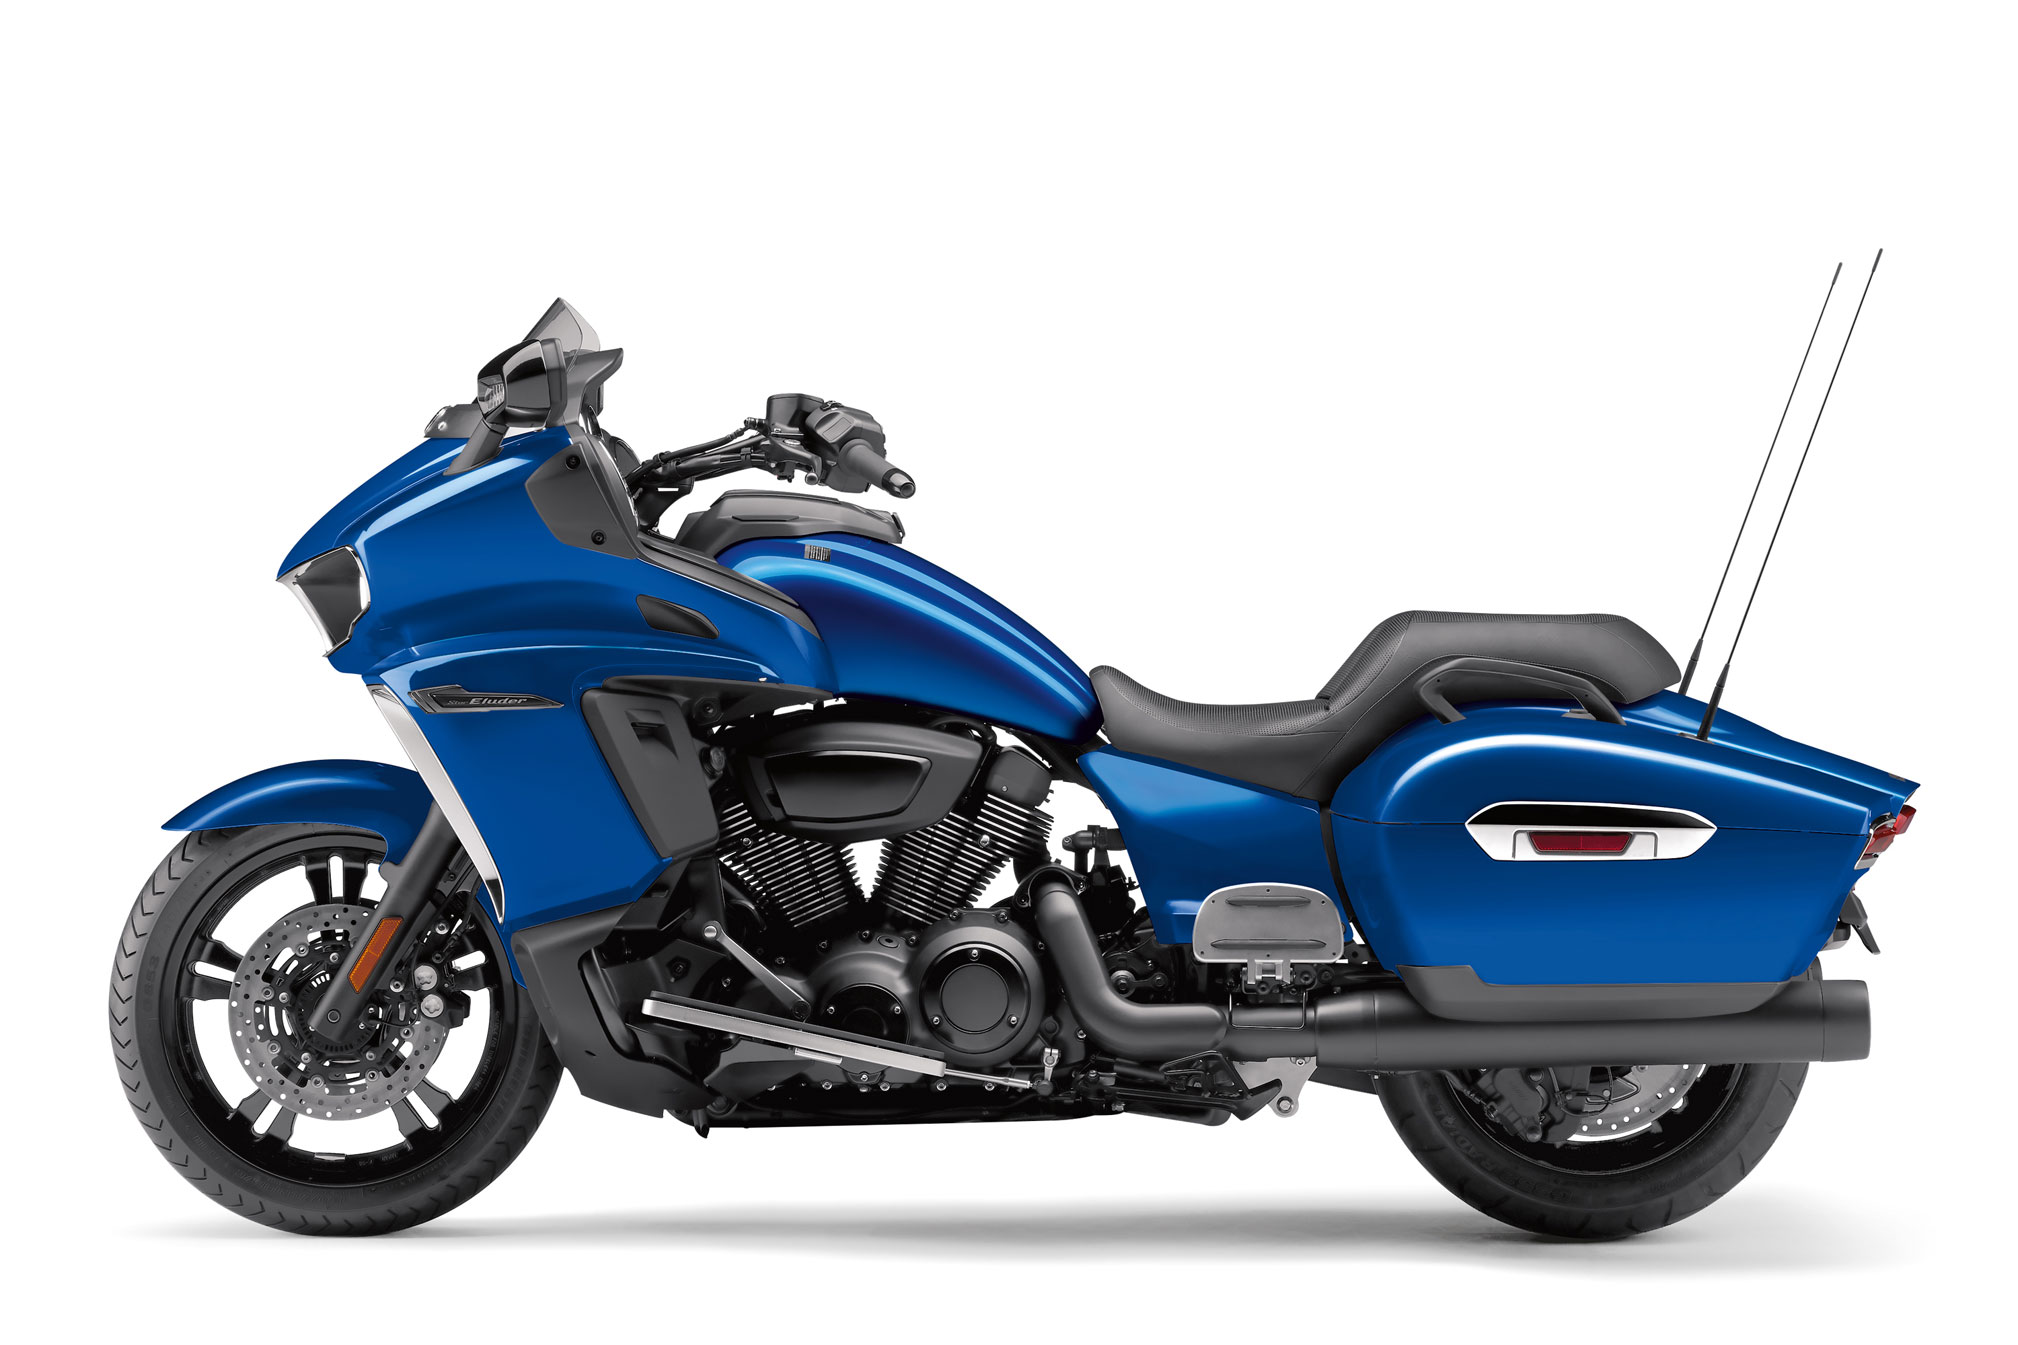 New Yamaha Motorcycle Touring